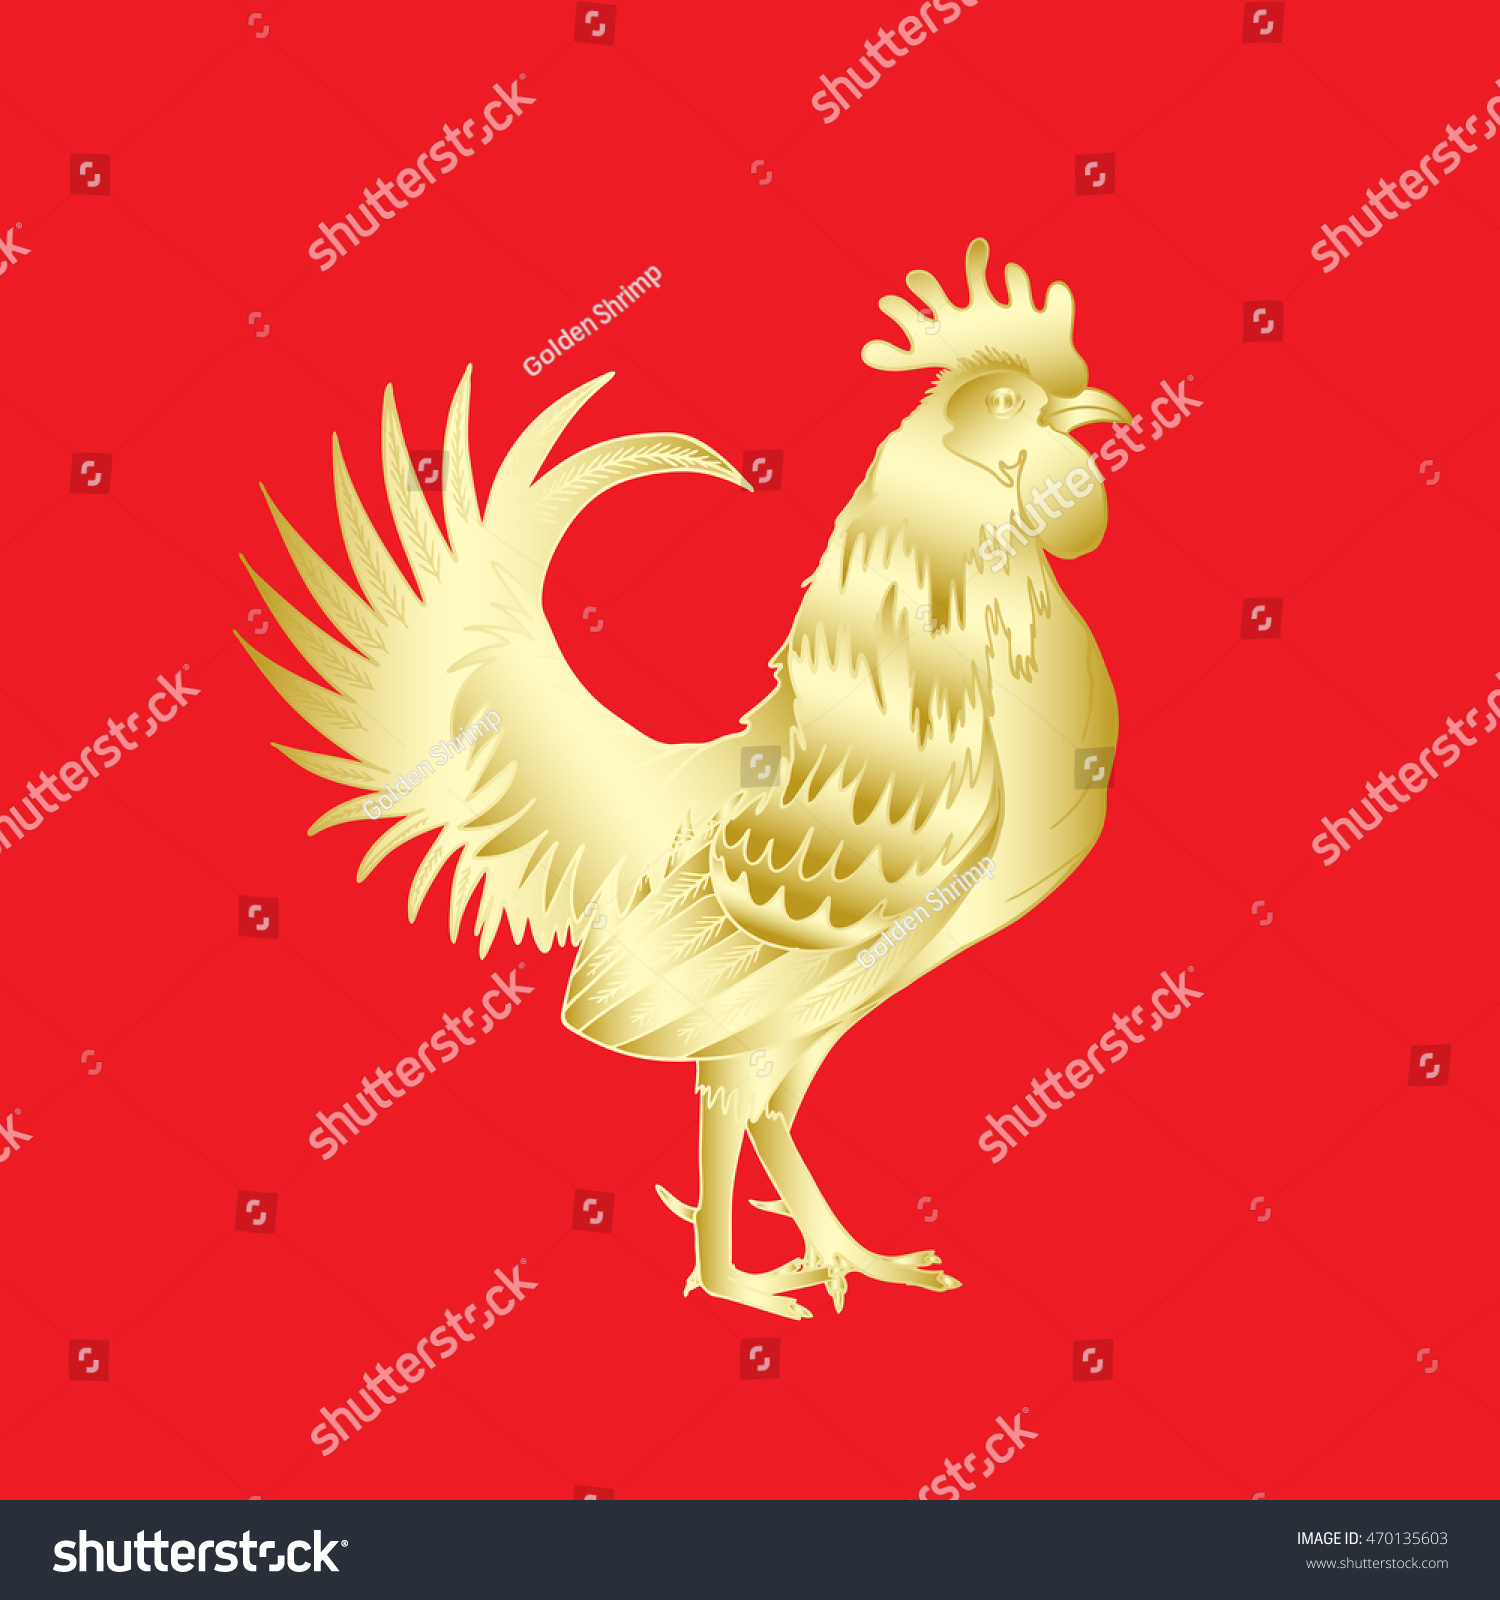 Chinese 2017 new year rooster symbol stock vector 470135603 chinese 2017 new year of the rooster symbol gold metallic rooster on red background is biocorpaavc